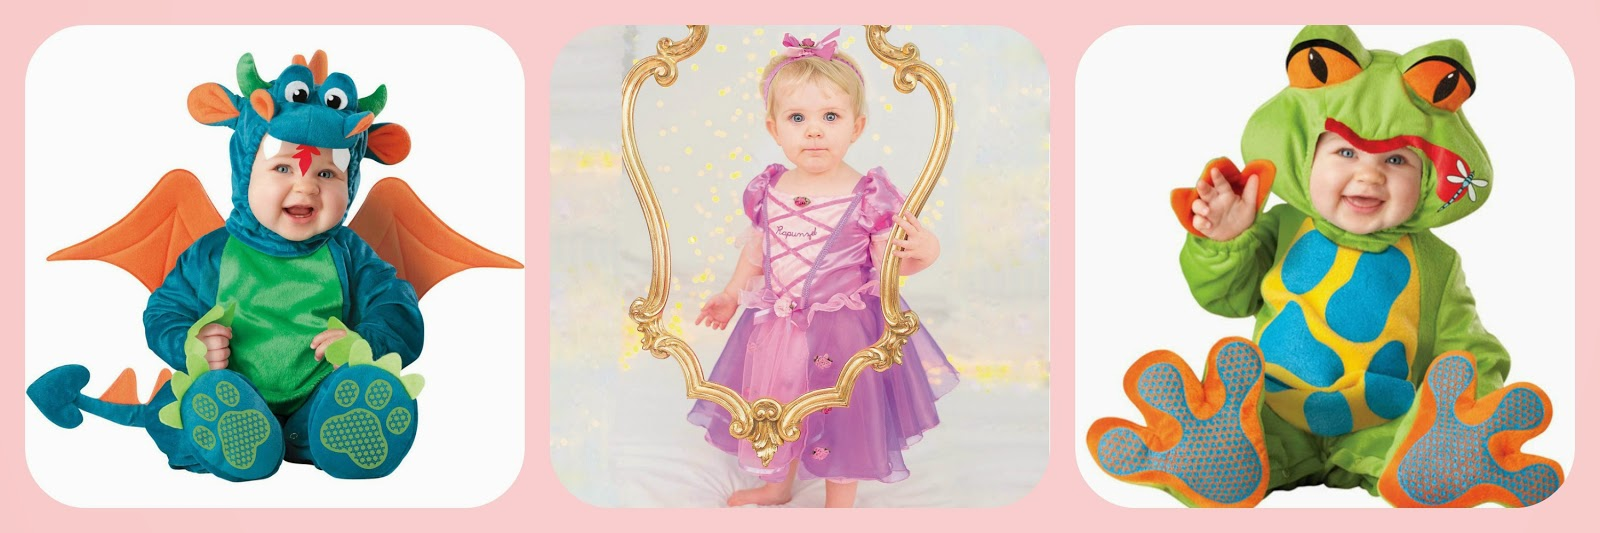 tantrums to smiles time to dress up costume review